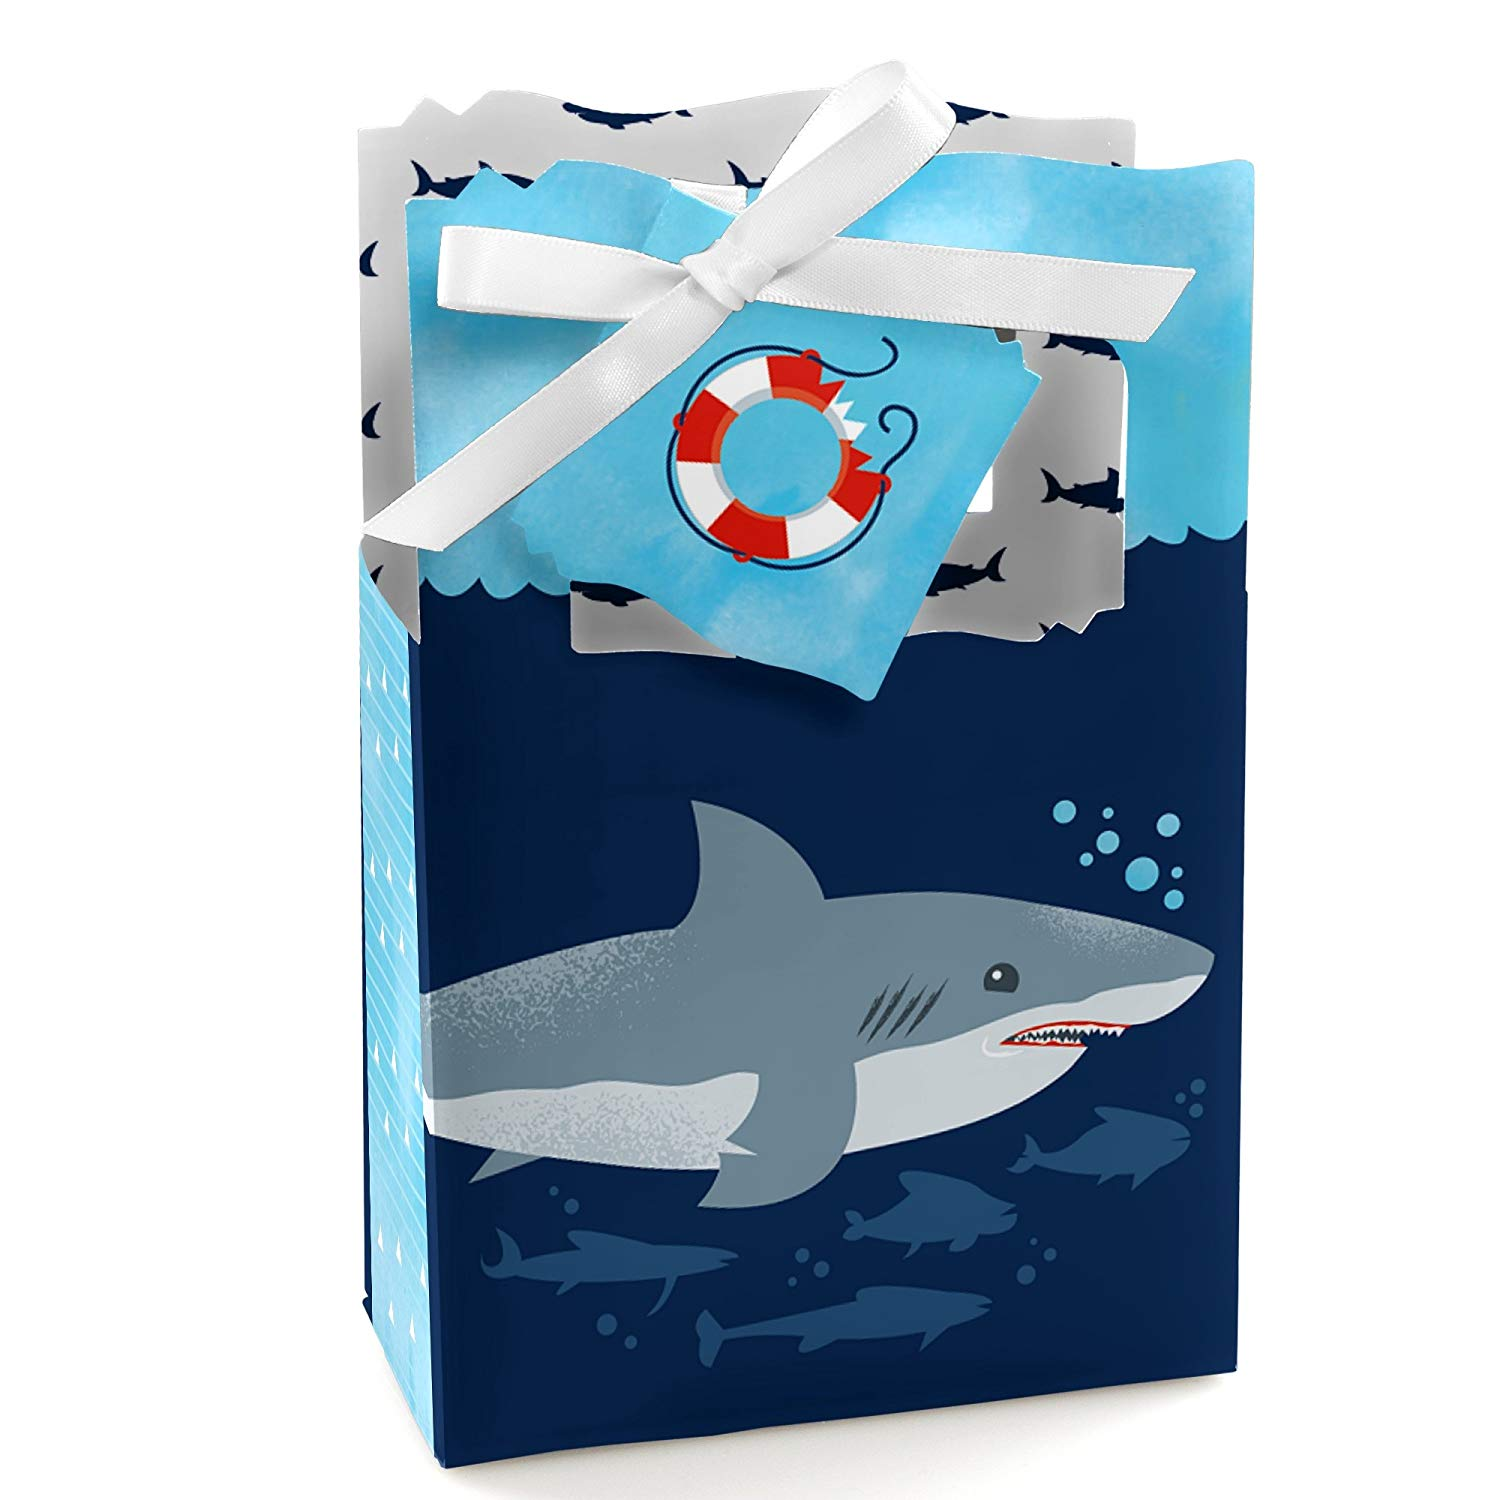 Shark Zone - Jawsome Shark Party or Birthday Party Favor Boxes - Set of 12